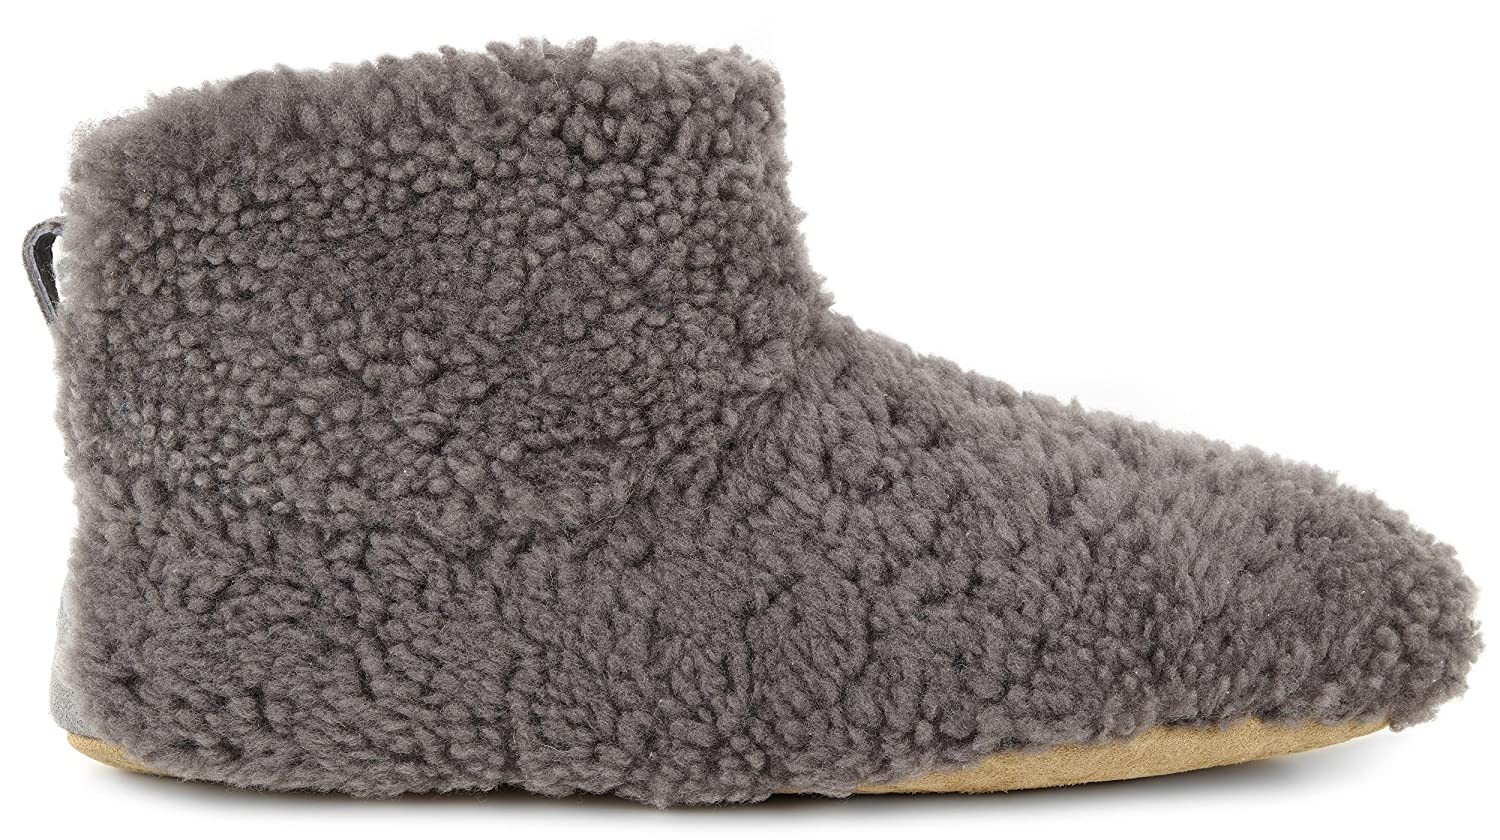 3c98bcbec5c UGG Womens Amary Slipper Grey Size 8: Amazon.co.uk: Shoes & Bags